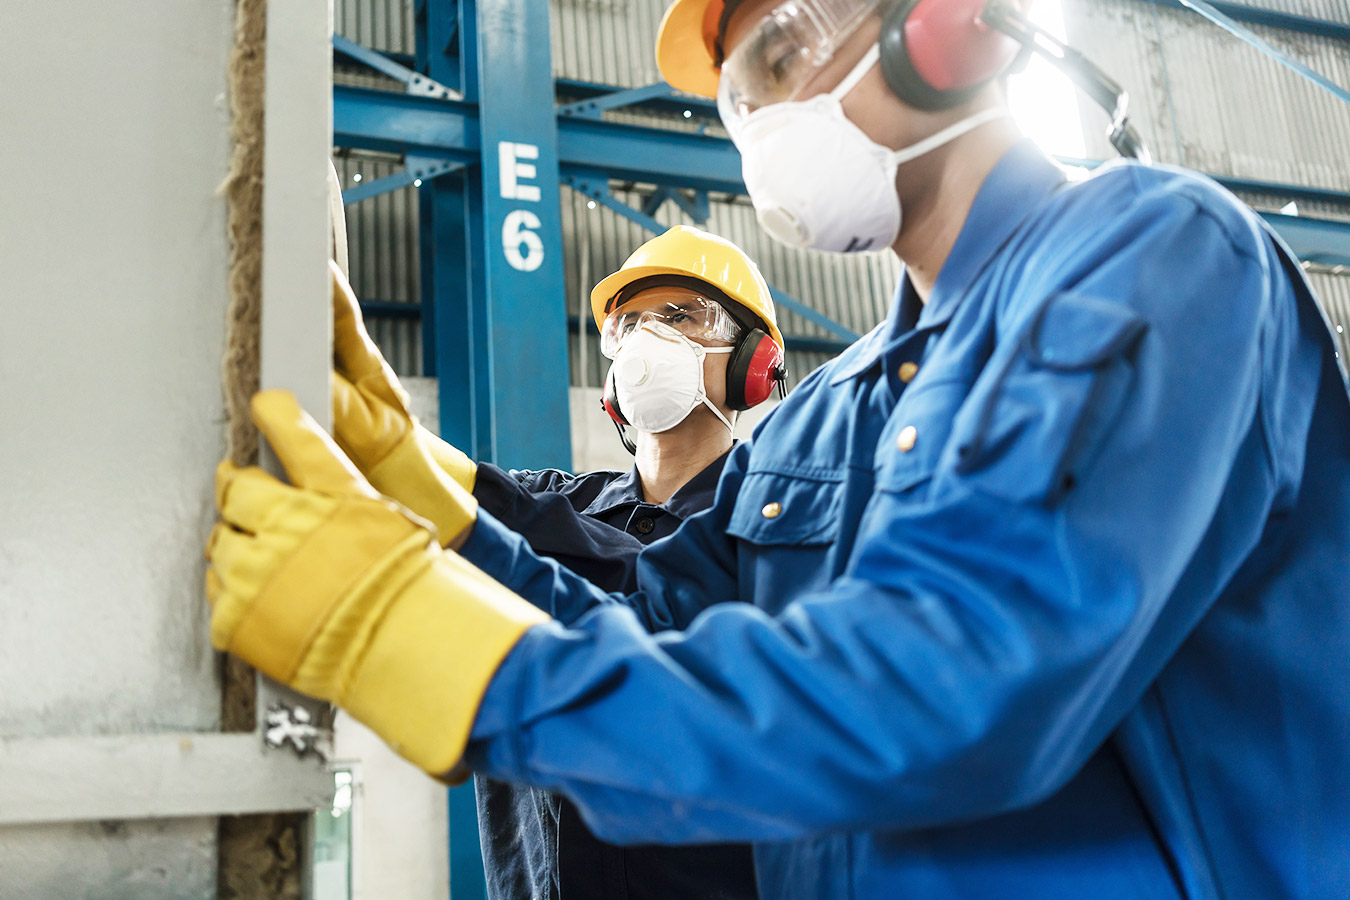 Leading the industry in health and safety